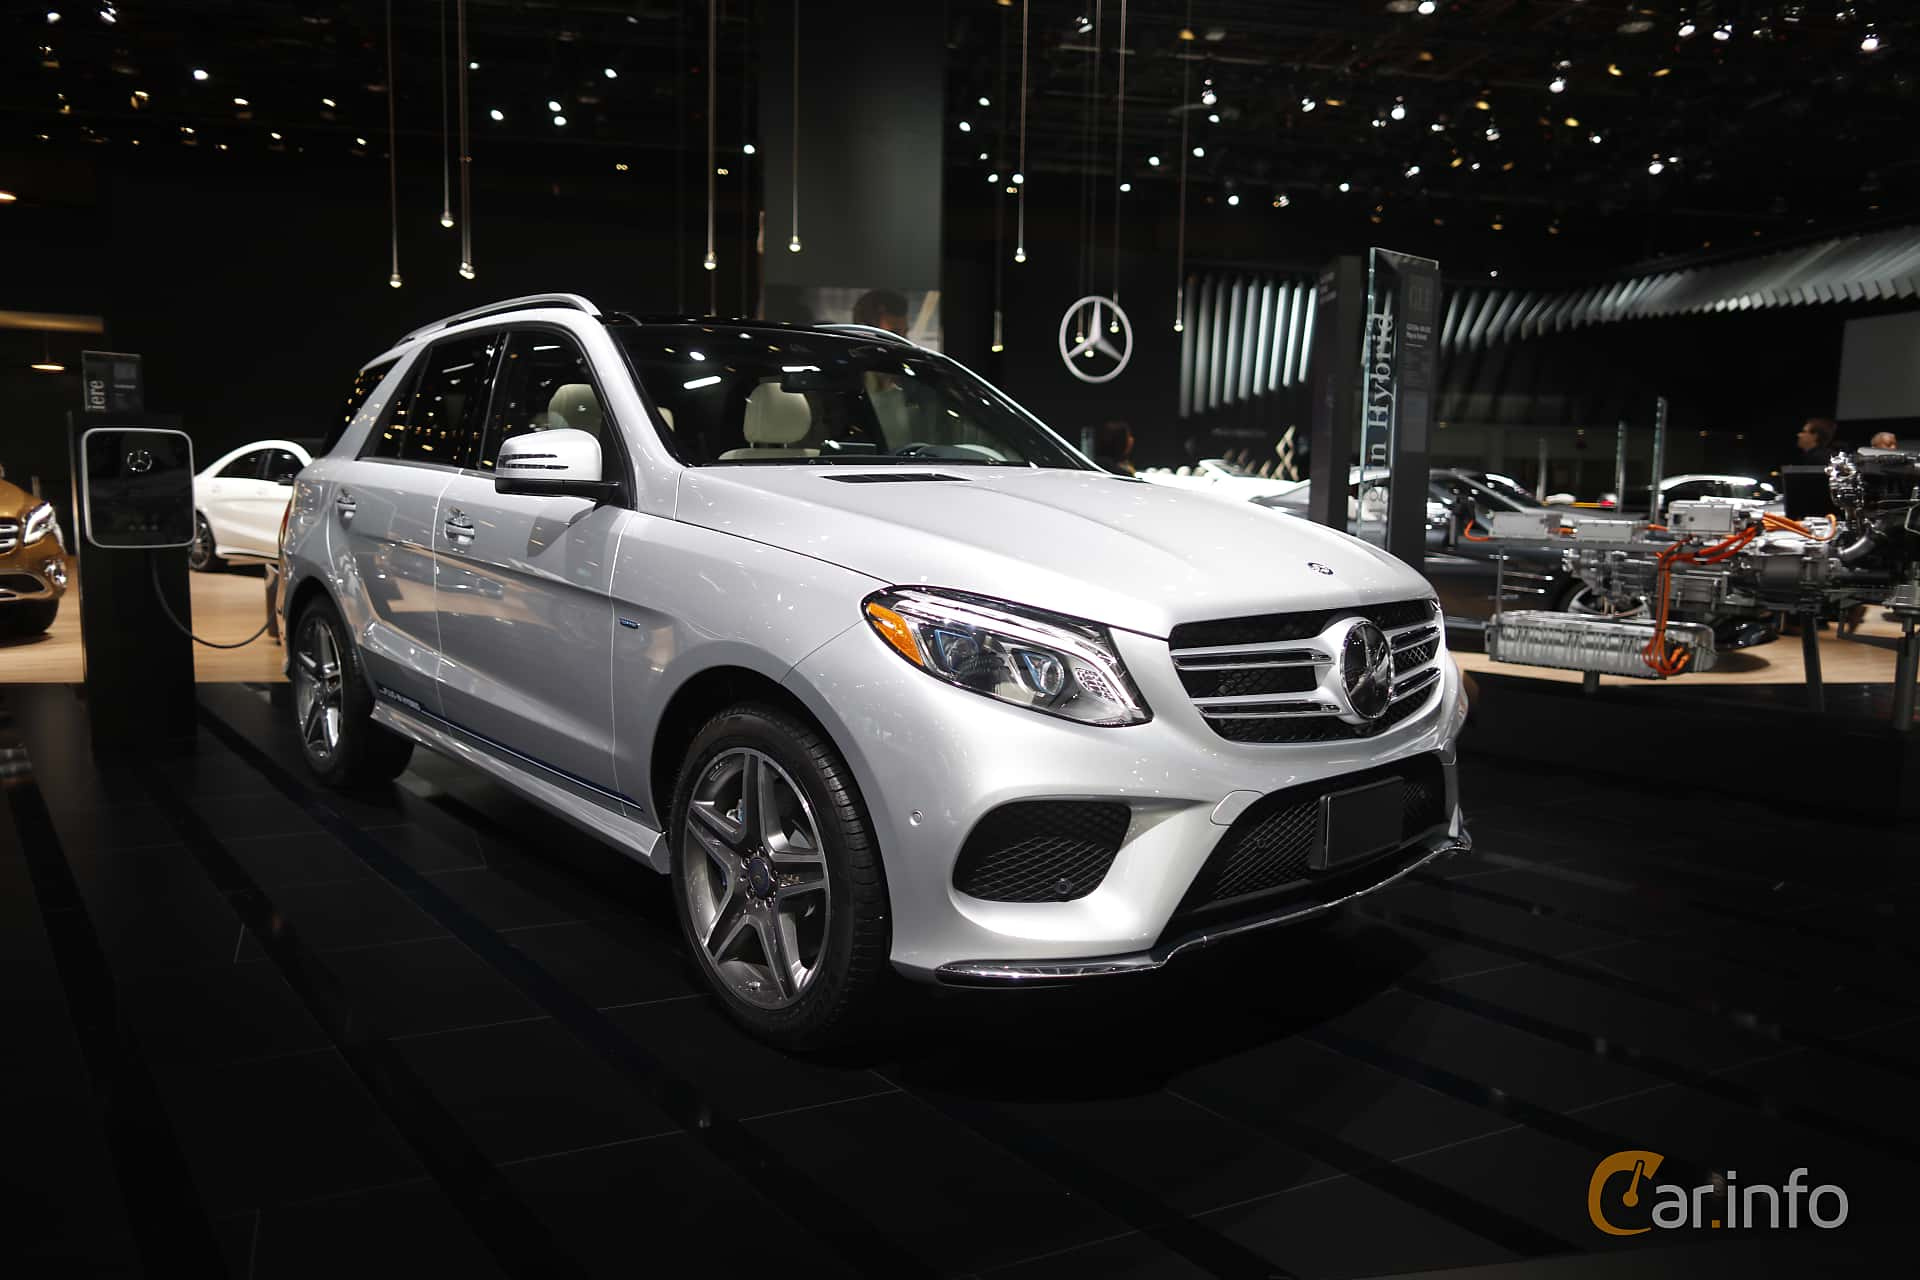 Mercedes-Benz GLE 500 e 4MATIC 3.0 V6 4MATIC 7G-Tronic Plus, 442hk, 2017 at North American International Auto Show 2017